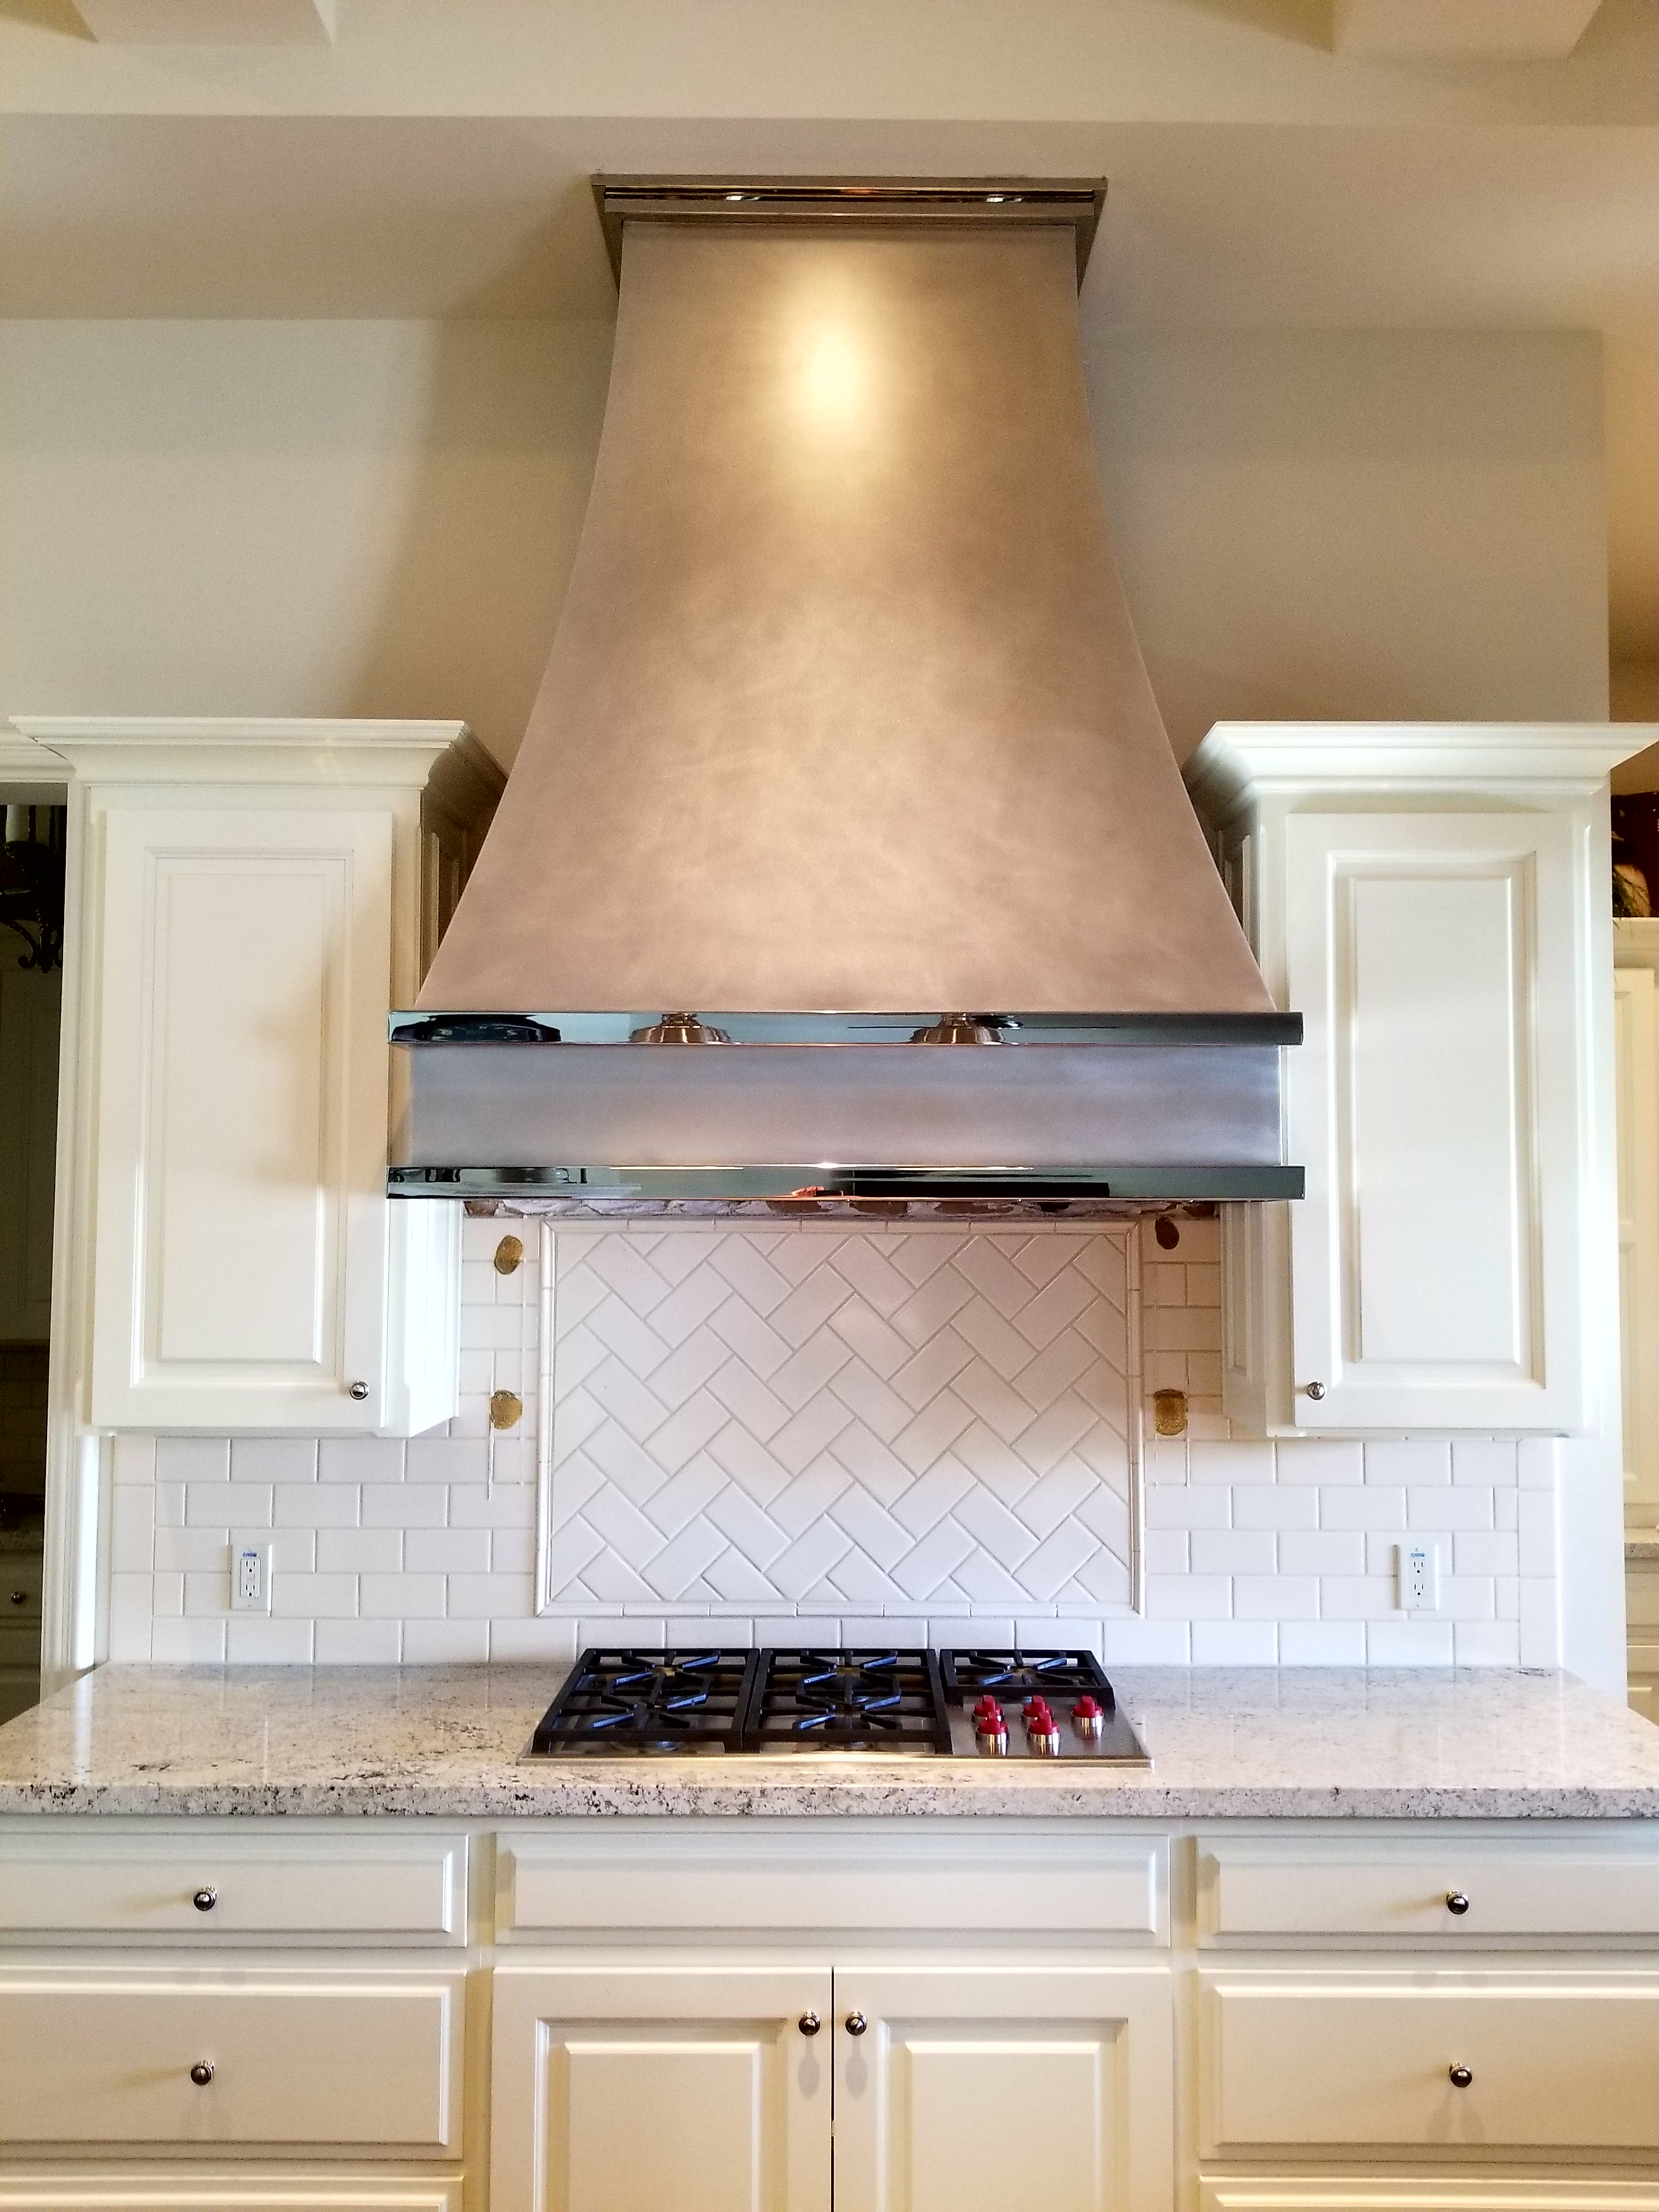 Custom Range Hoods  Oven Hoods  Artistic Alloys & Design Llc. French Console Table. Bathroom Vanity Set. Backyard Cabana. Ferguson Plumbing San Antonio